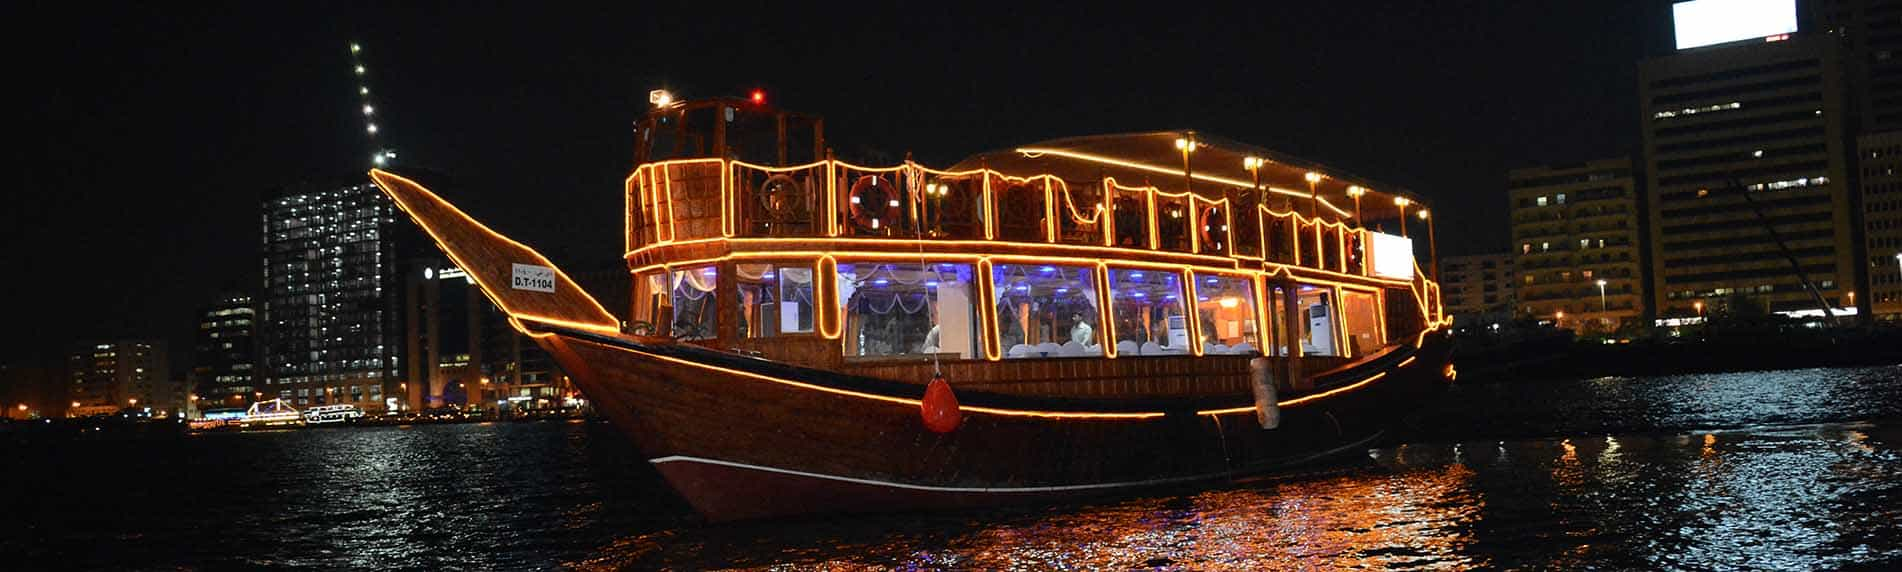 dhow special events